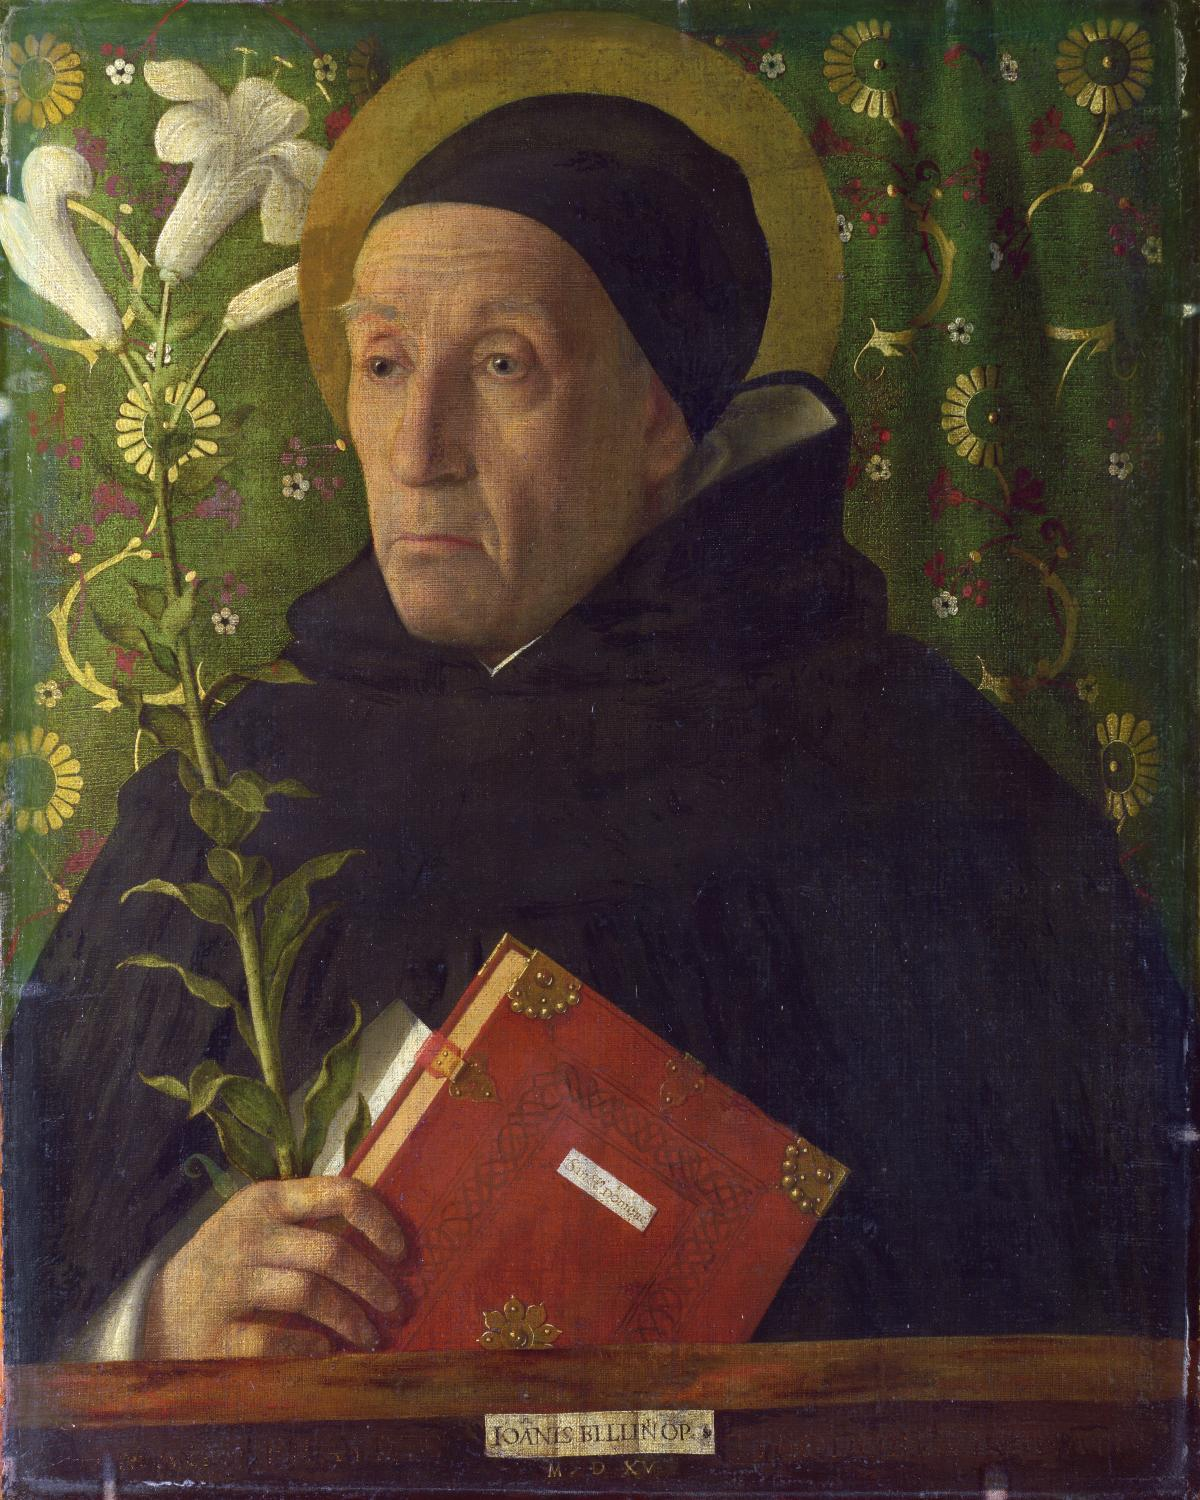 Saint in a black monk's habit and cap, holding a red leather Bible and a long stemmed white flower